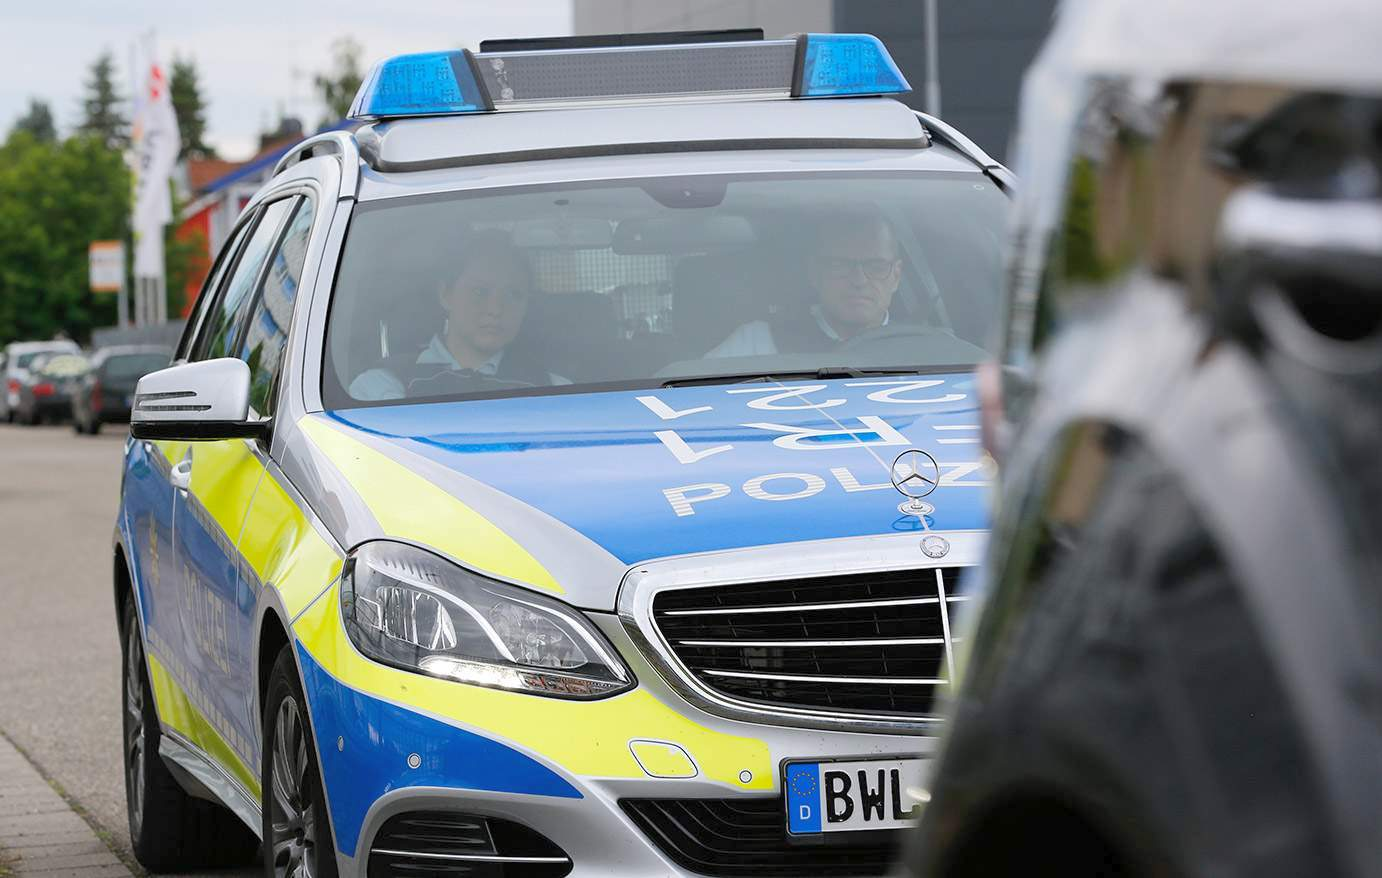 unfall a81 heute ludwigsburg nord